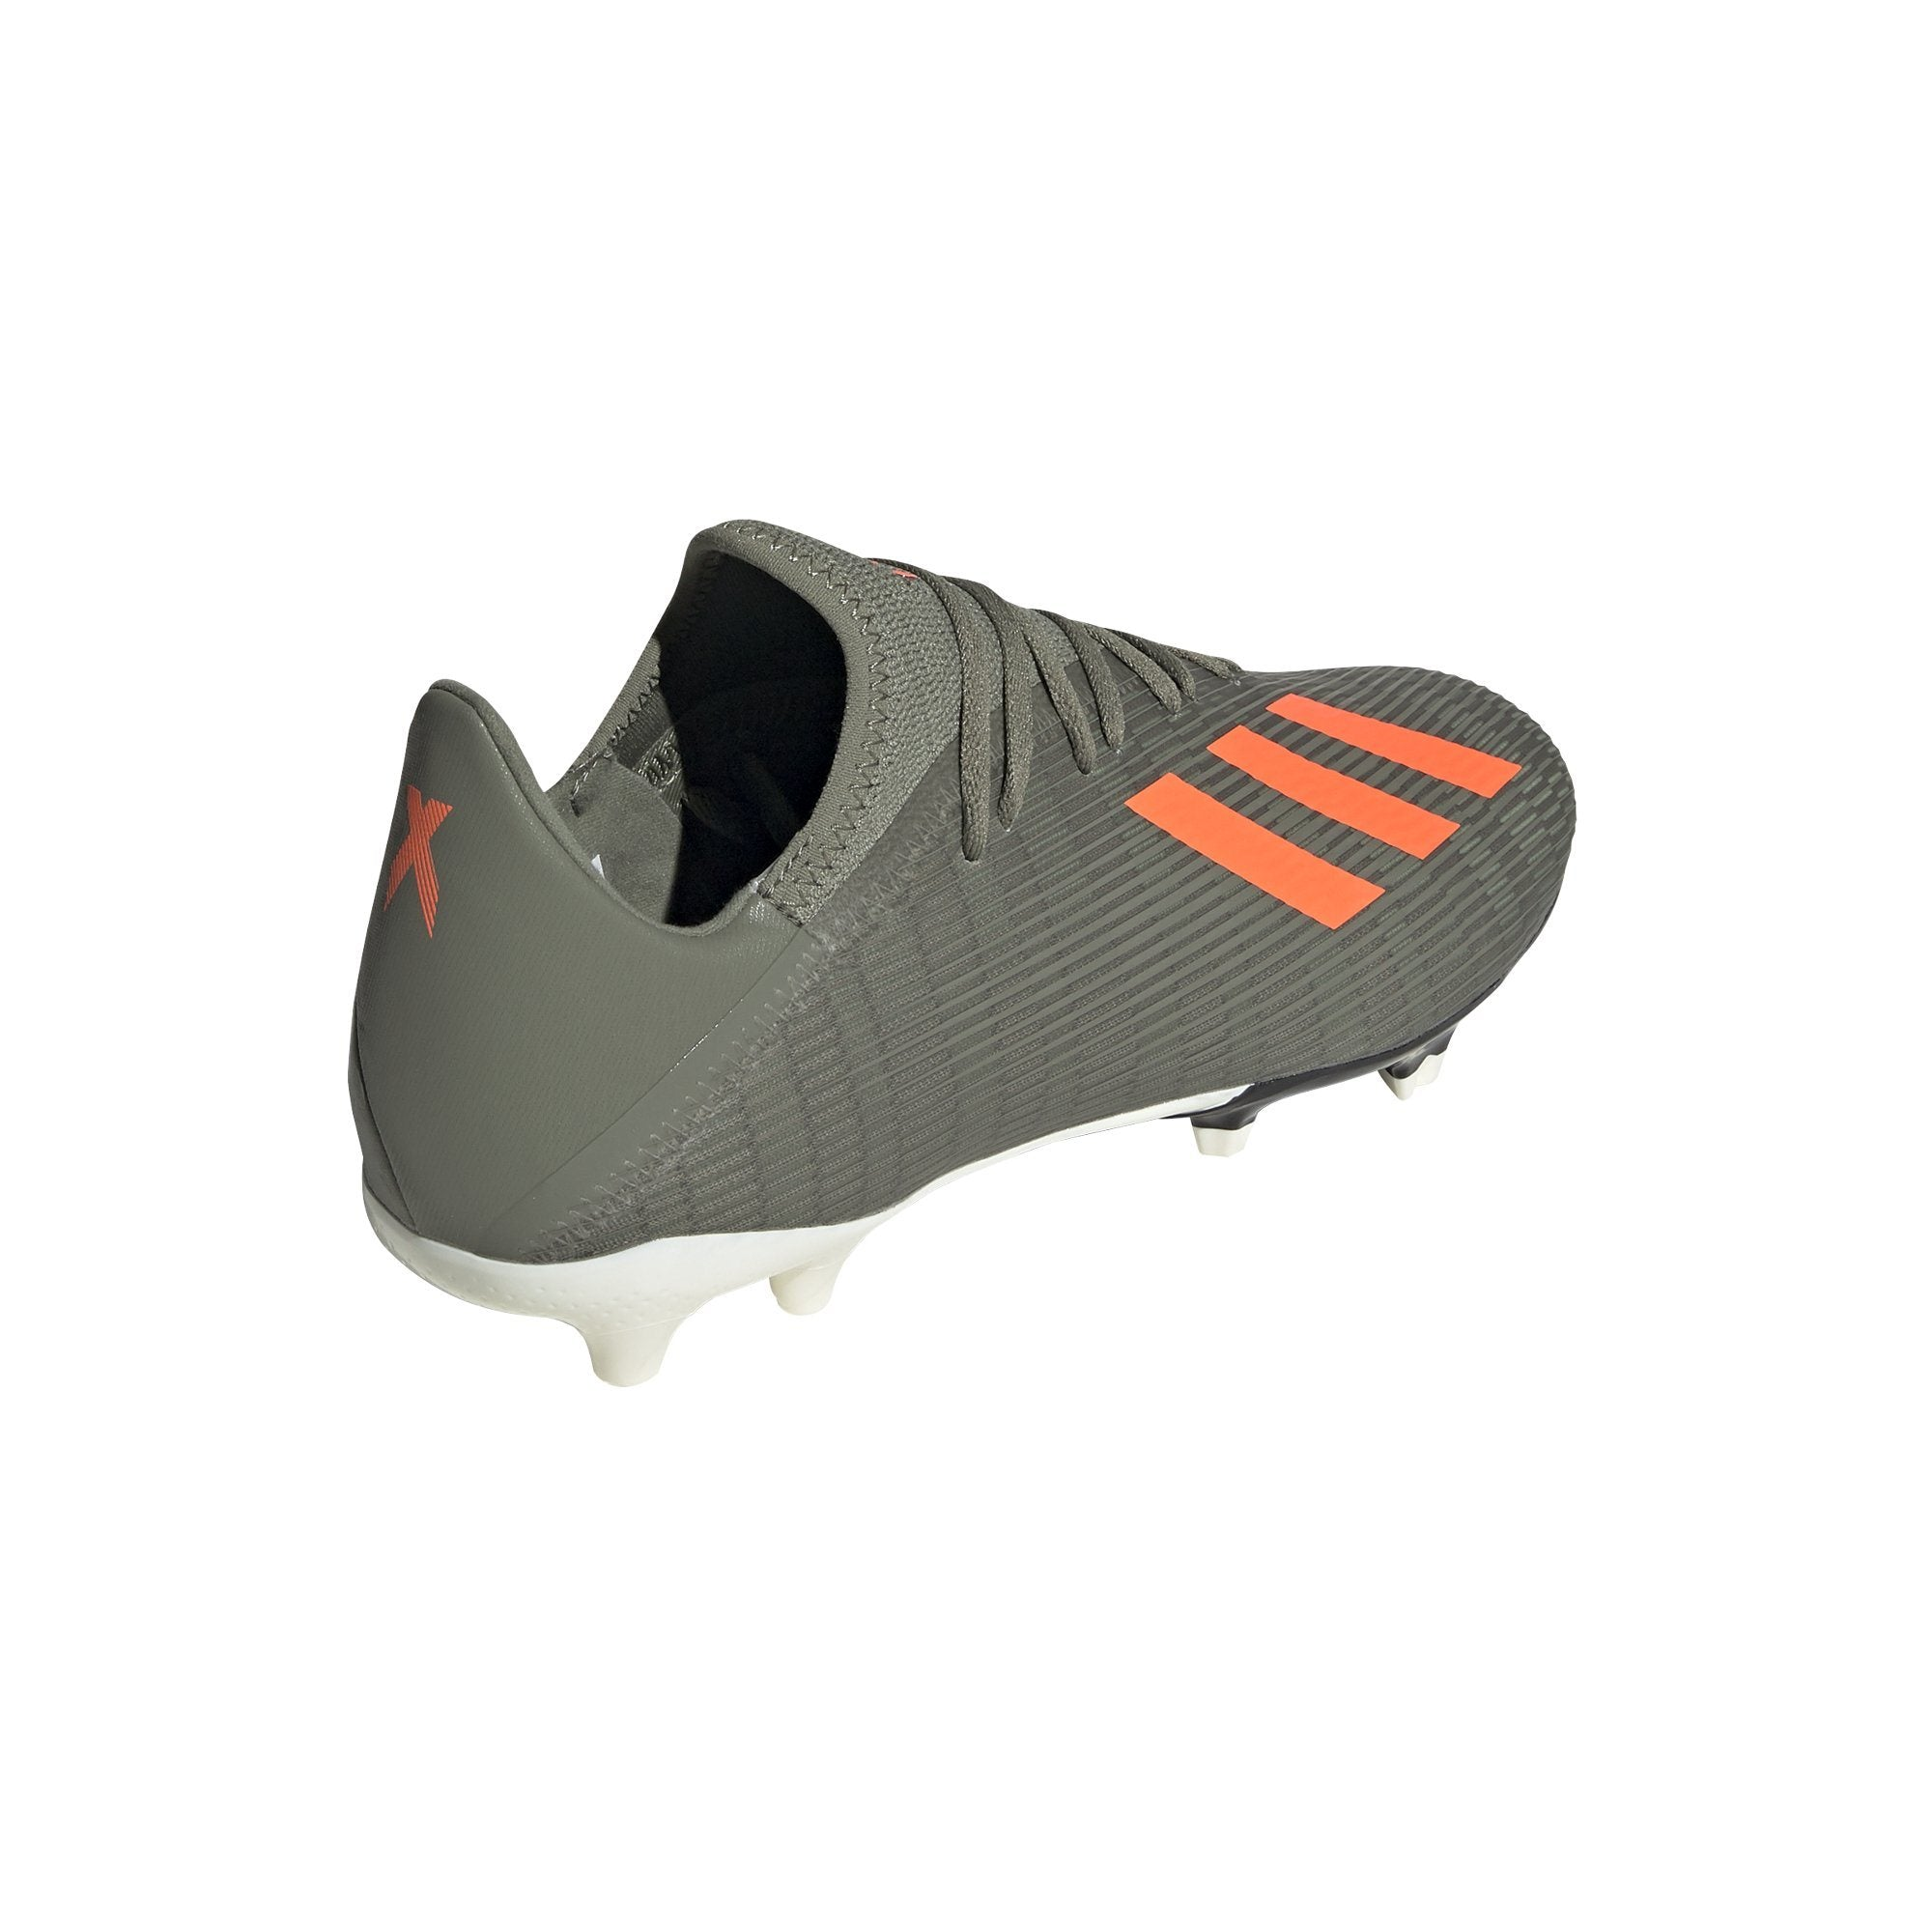 Adidas Mens X 19.3 Firm Ground Boots - legacy green/solar orange/chalk white SP-FOOTWEAR-MENS Adidas